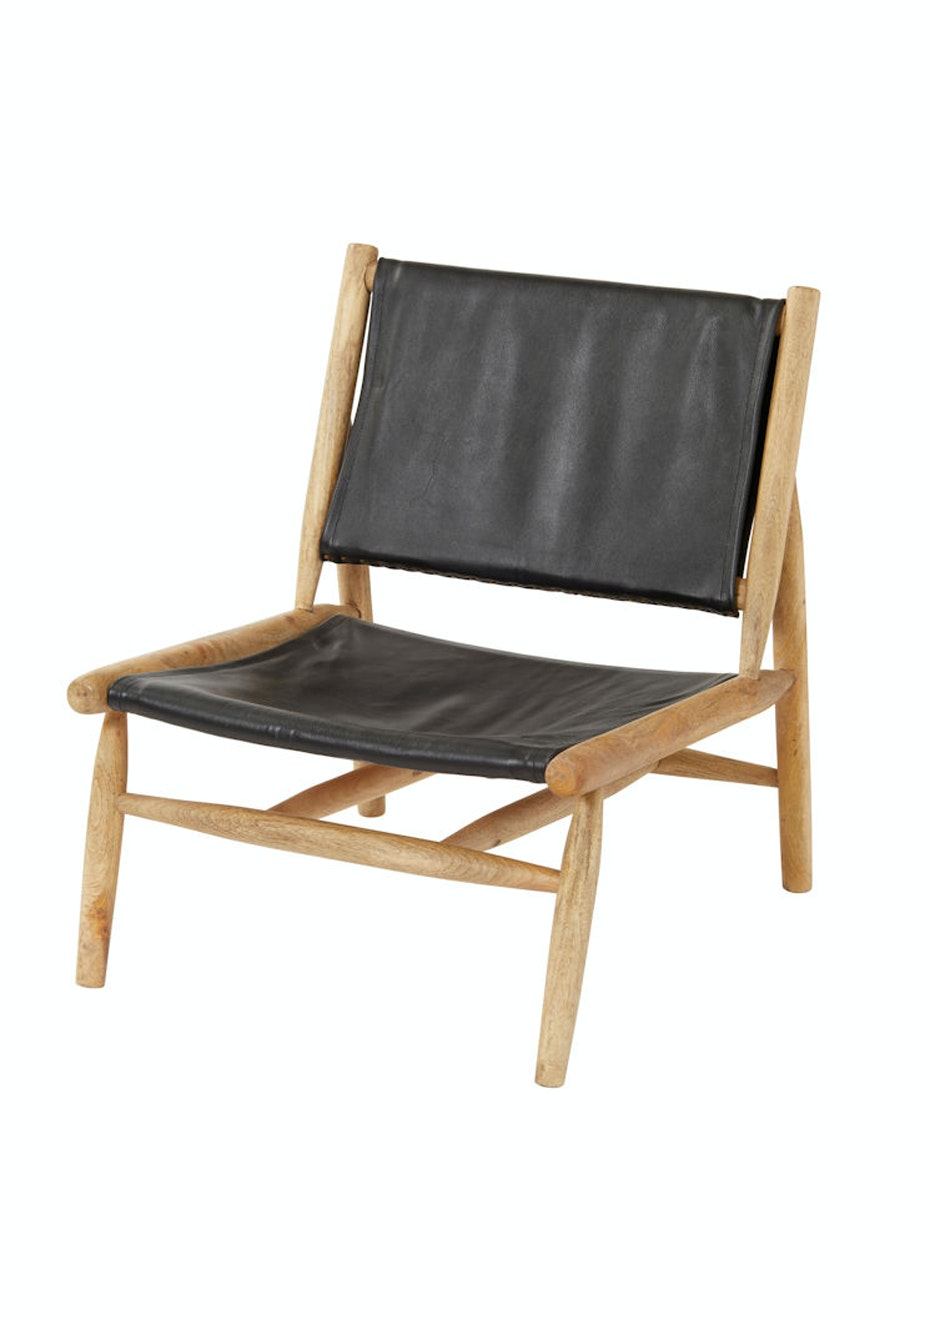 wood and leather chair. Amalfi - Haymes Leather Chair Natural Mango Wood/Black Designer Furniture Pieces Onceit Wood And